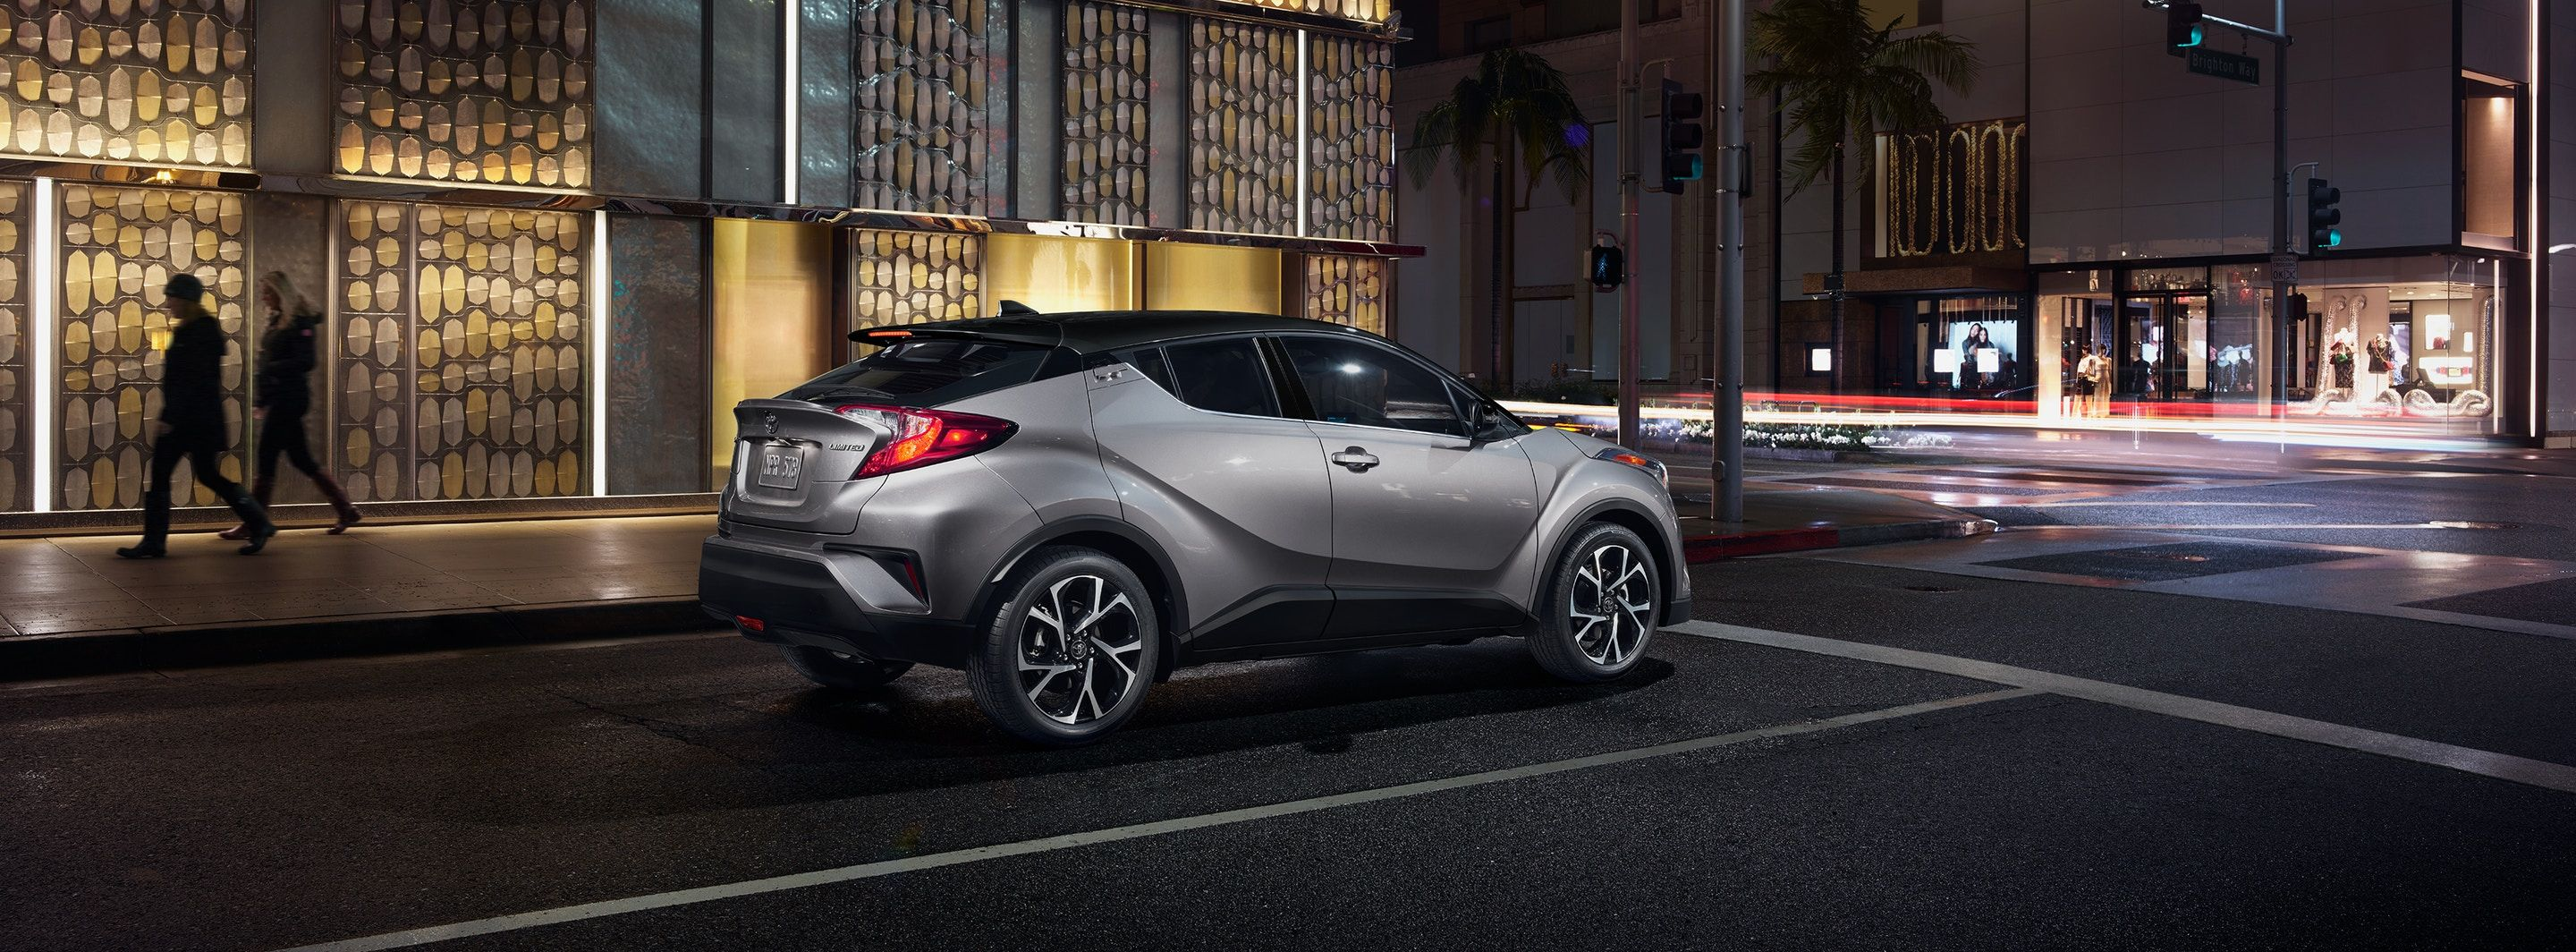 2019 Toyota C-HR for Sale near Olathe, KS